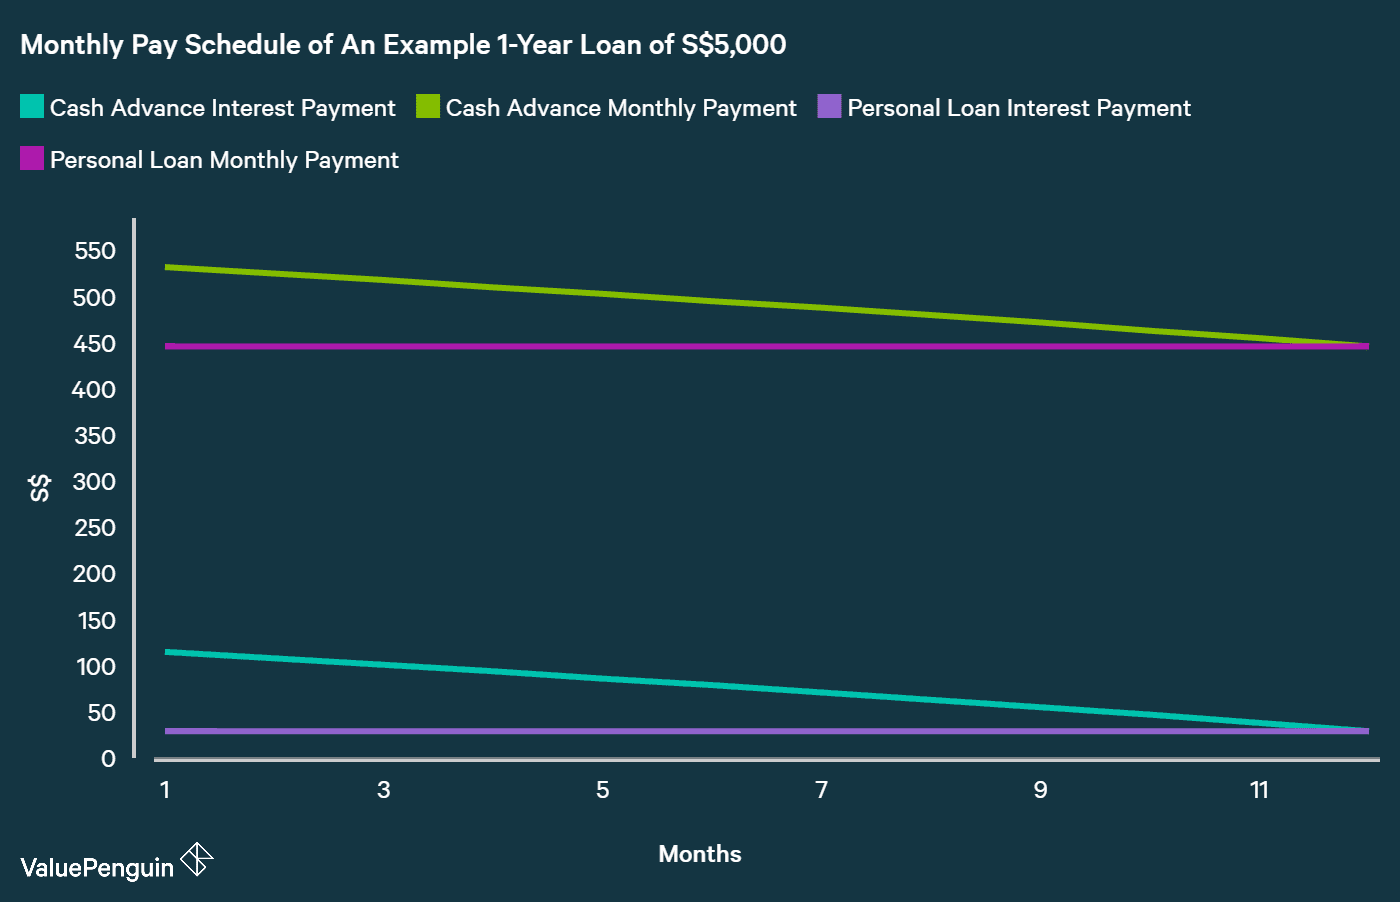 comparing monthly payment schedule of a cash advance loan vs personal loan given that they are charging different interest rates